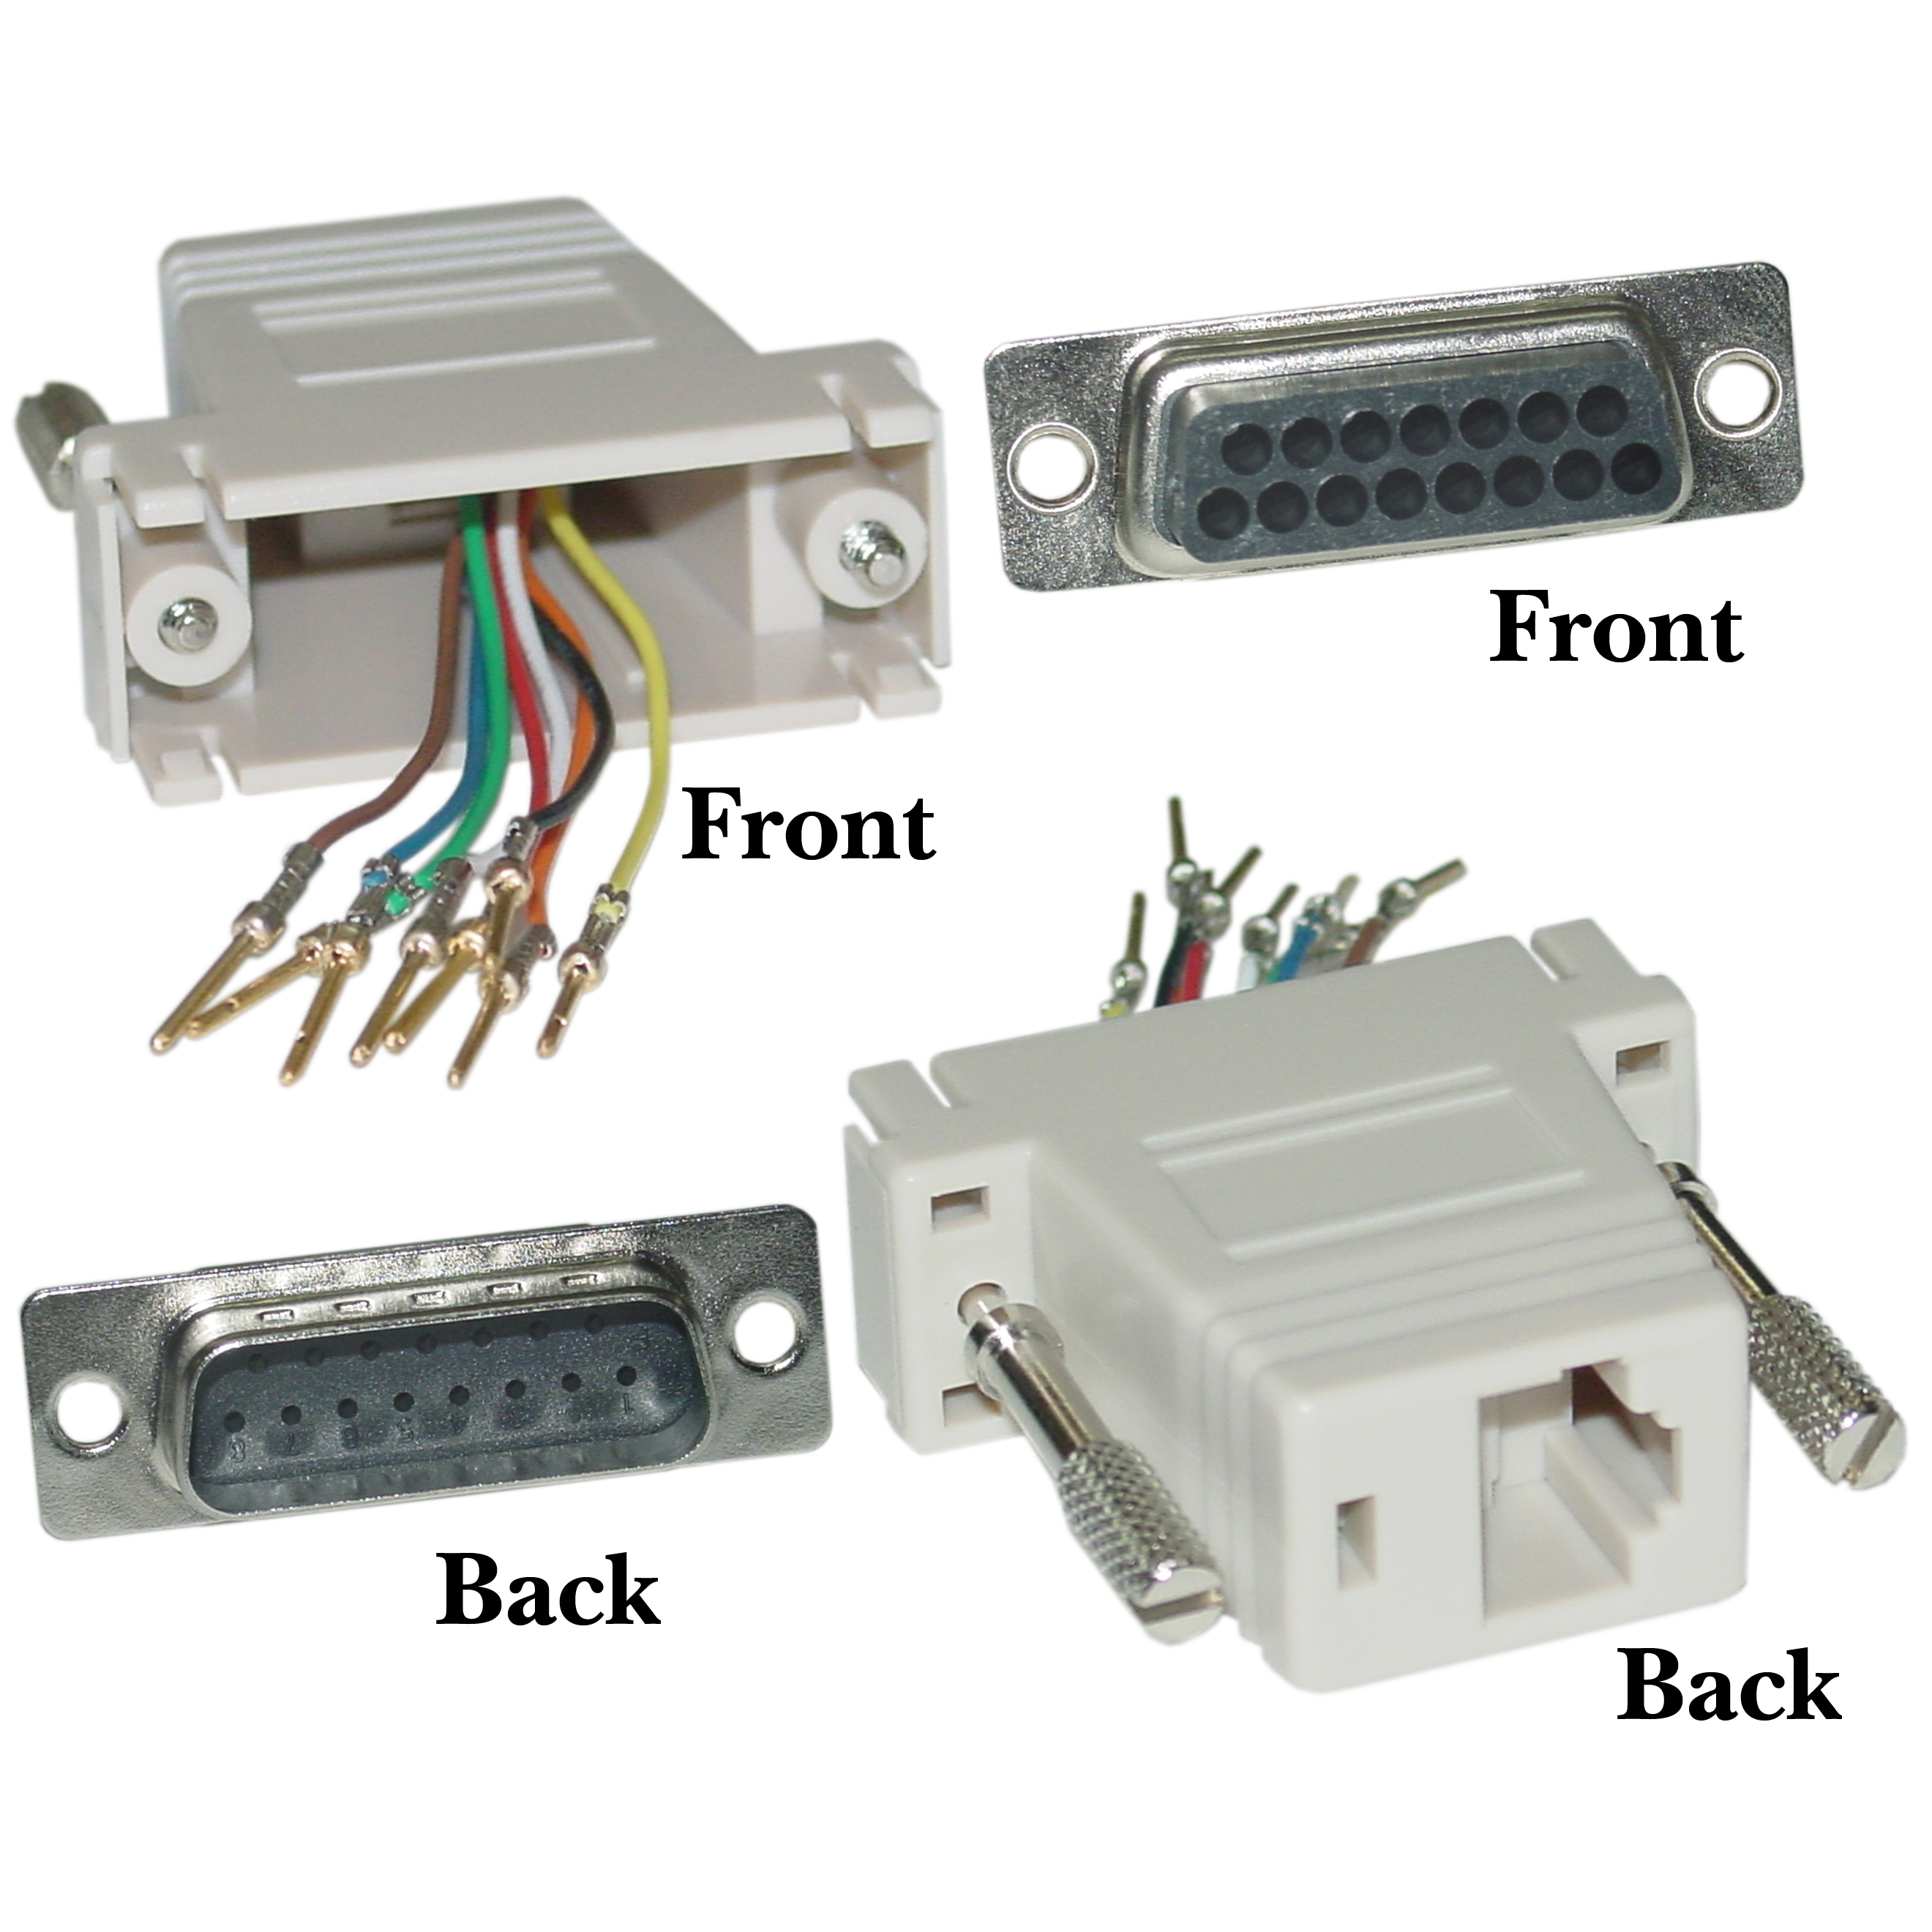 Modular Adapter, Beige, DB15 Male to RJ45 Female